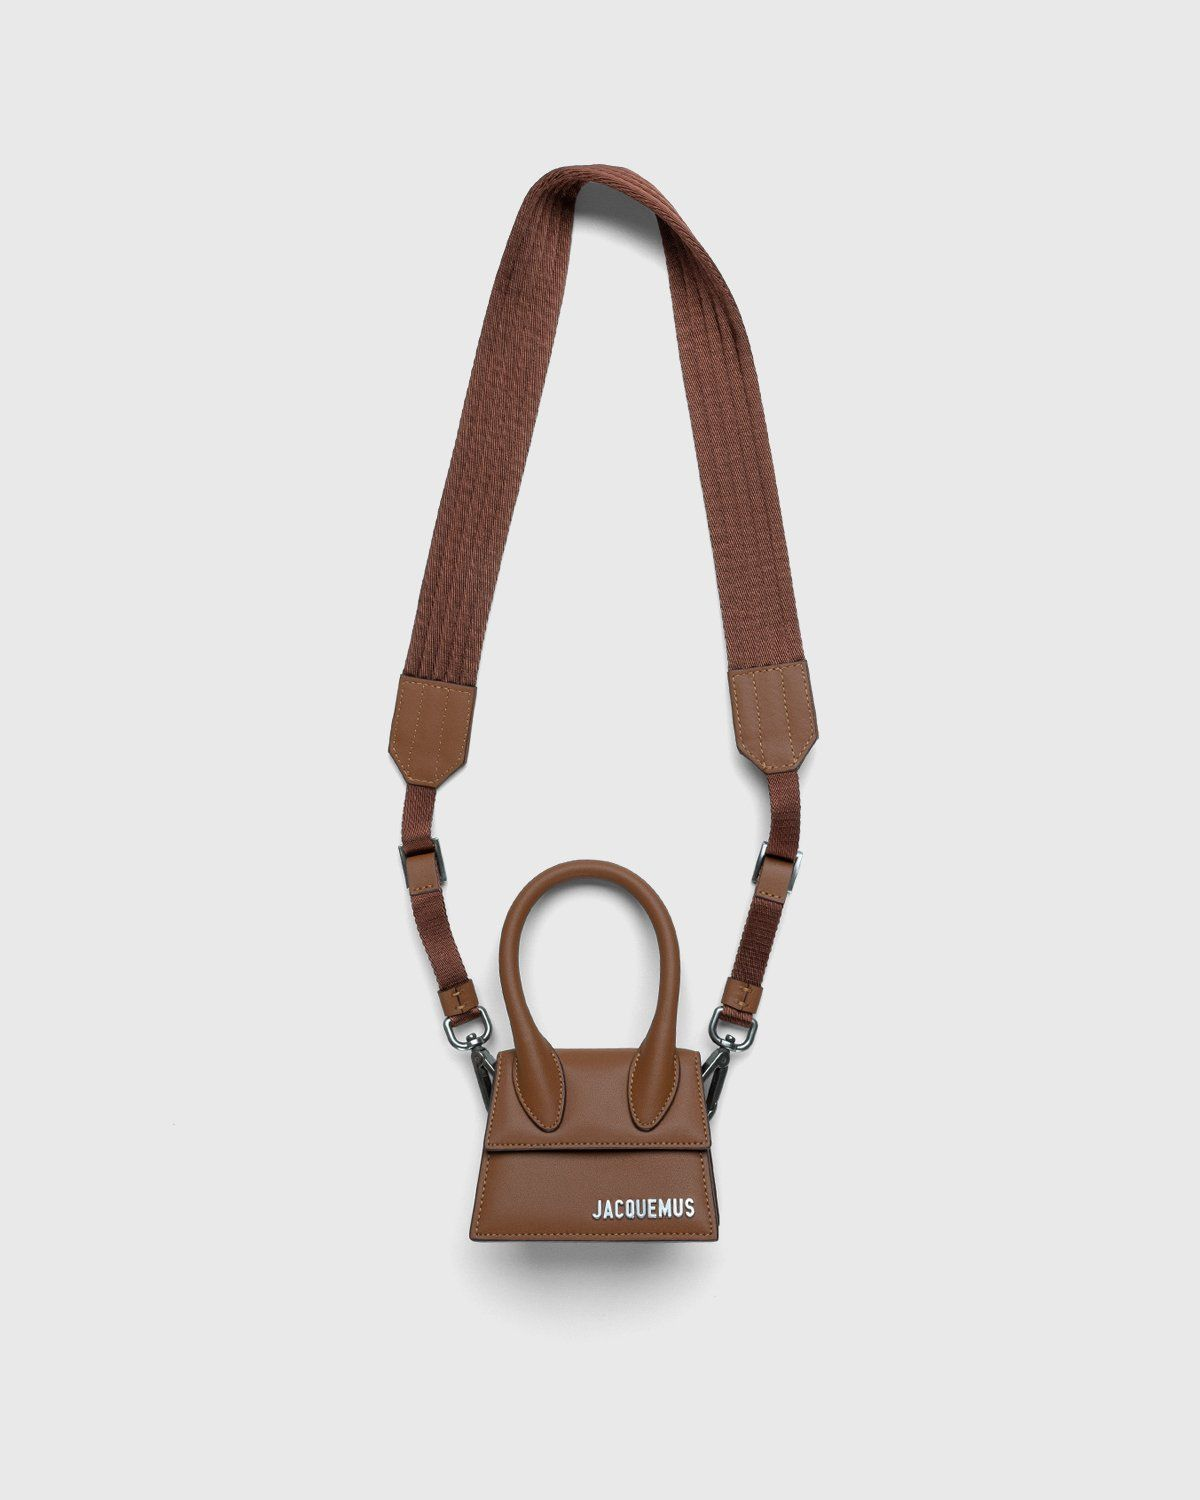 Jacquemus – Le Chiquito Homme Brown - Image 5